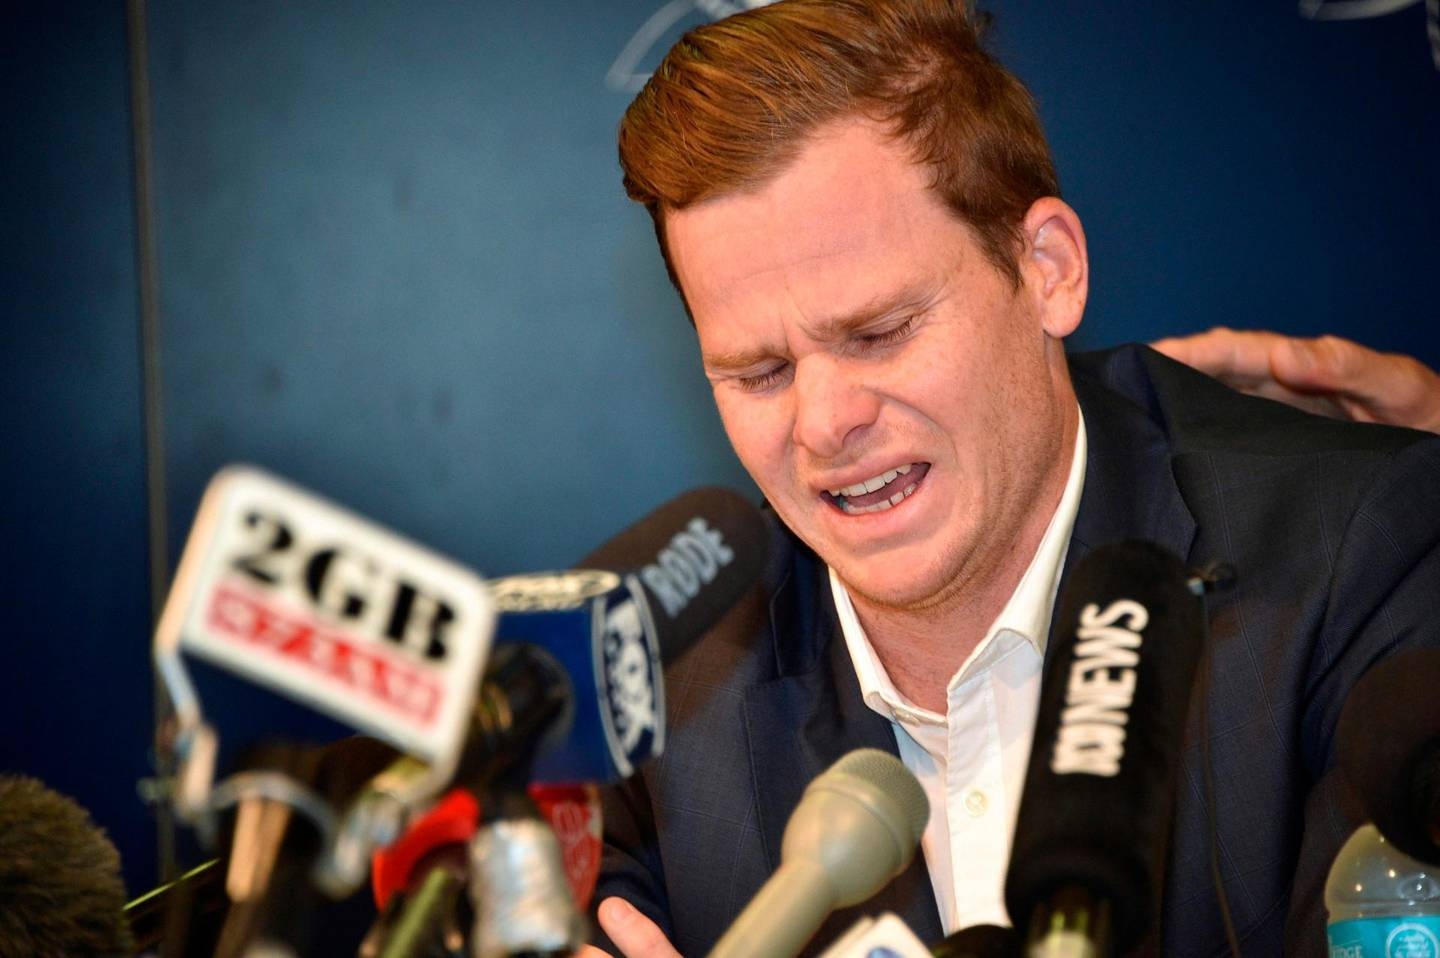 """(FILES) A file photo taken on March 29, 2018 show Australian cricket player Steve Smith reacting at a press conference at the airport in Sydney, after returning from South Africa.   Smith admitted on June 4, 2018 he cried for four days after a ball-tampering scandal in South Africa that rocked the sport, as he told children """"it's okay to show emotion"""". -   / AFP / Peter PARKS"""